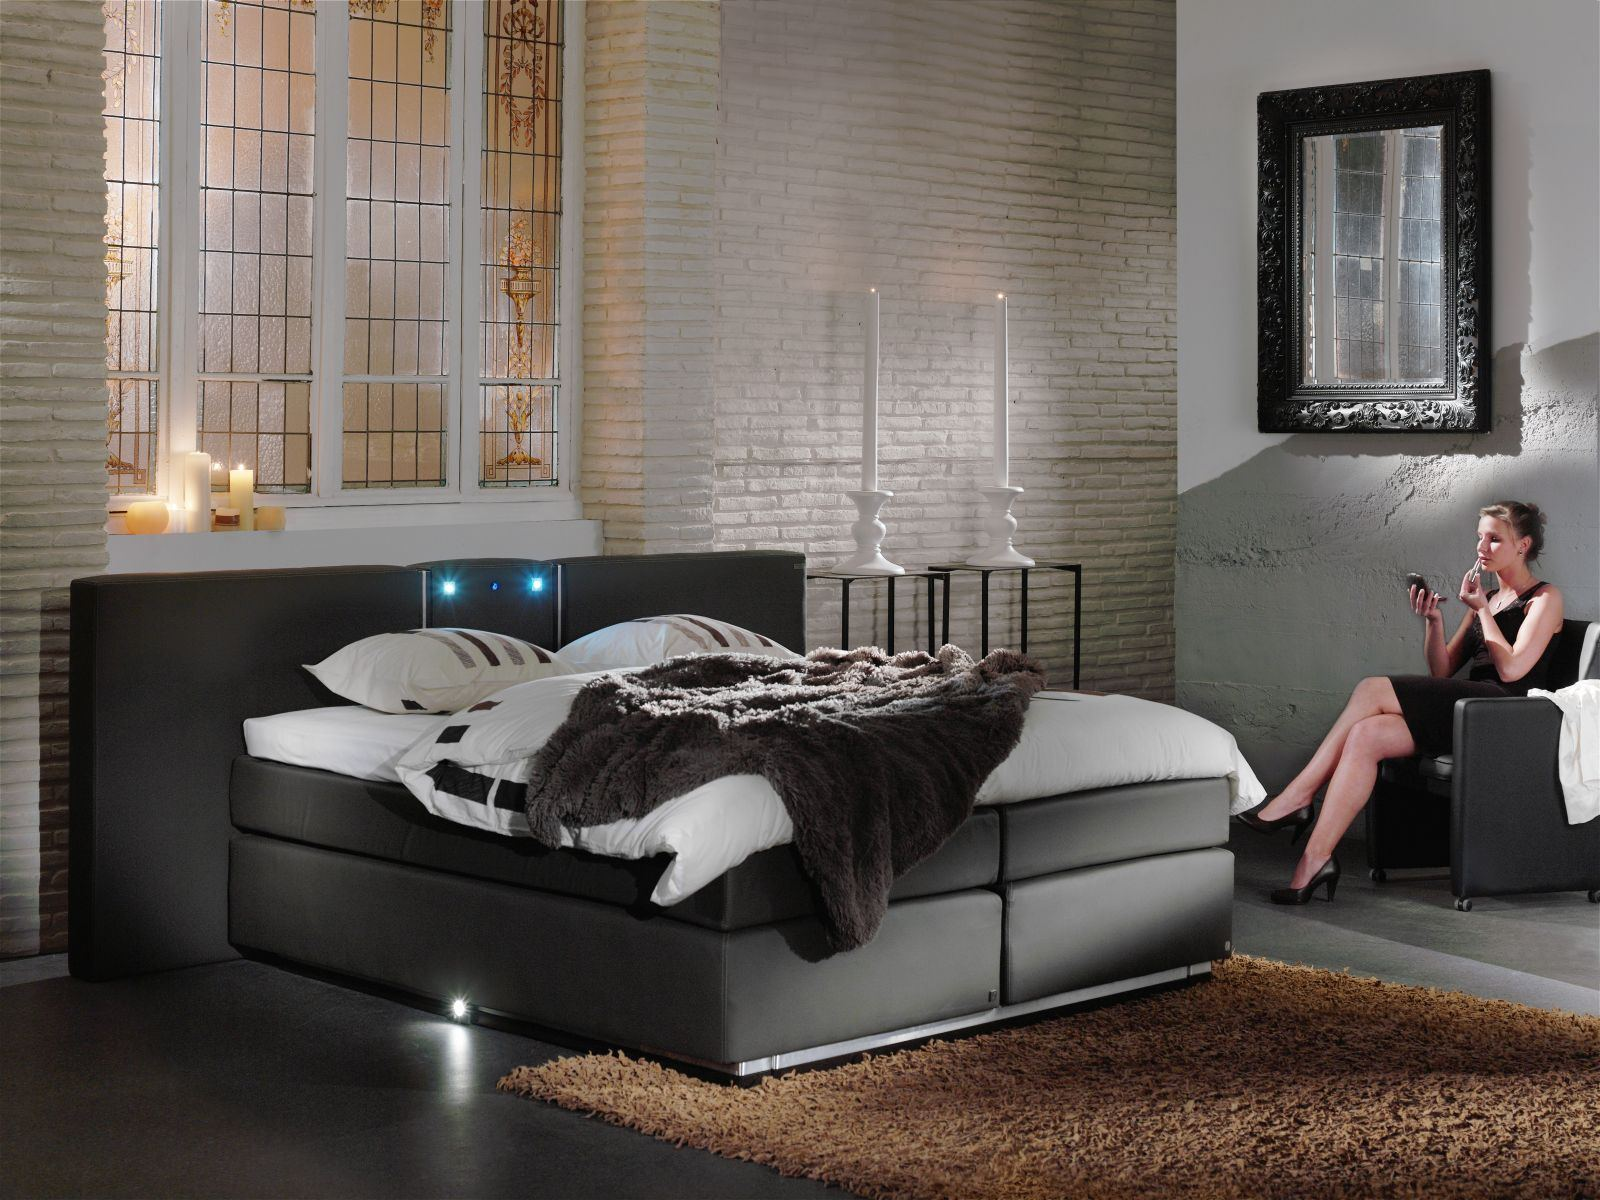 design boxspringbett oxford luxus hotelbett hochwertig gestepptes kopfteil ebay. Black Bedroom Furniture Sets. Home Design Ideas